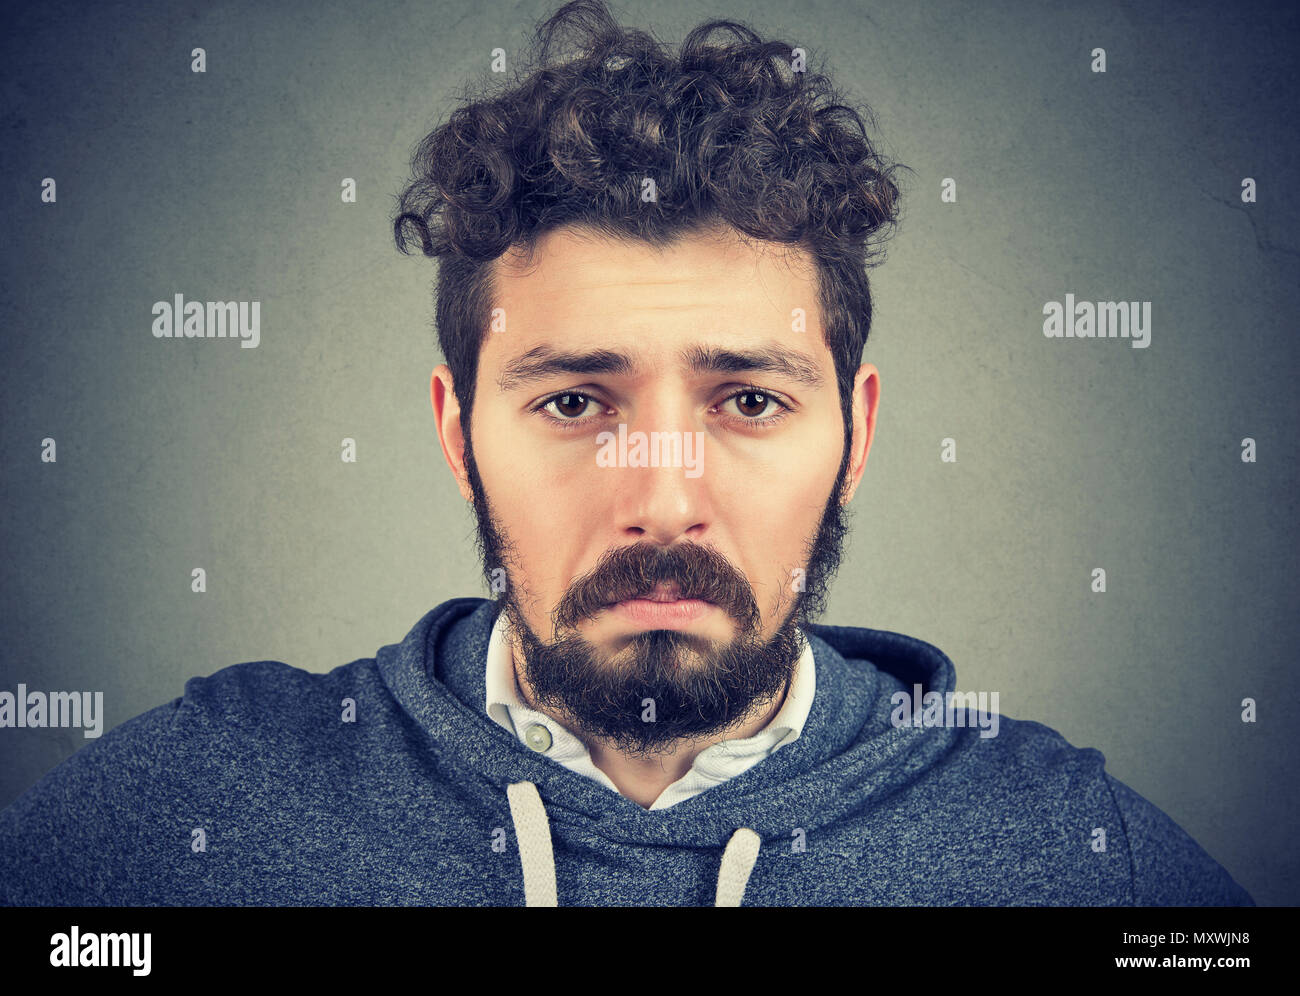 Closeup of young hipster man with curls having depression and looking sadly at camera with pity. - Stock Image